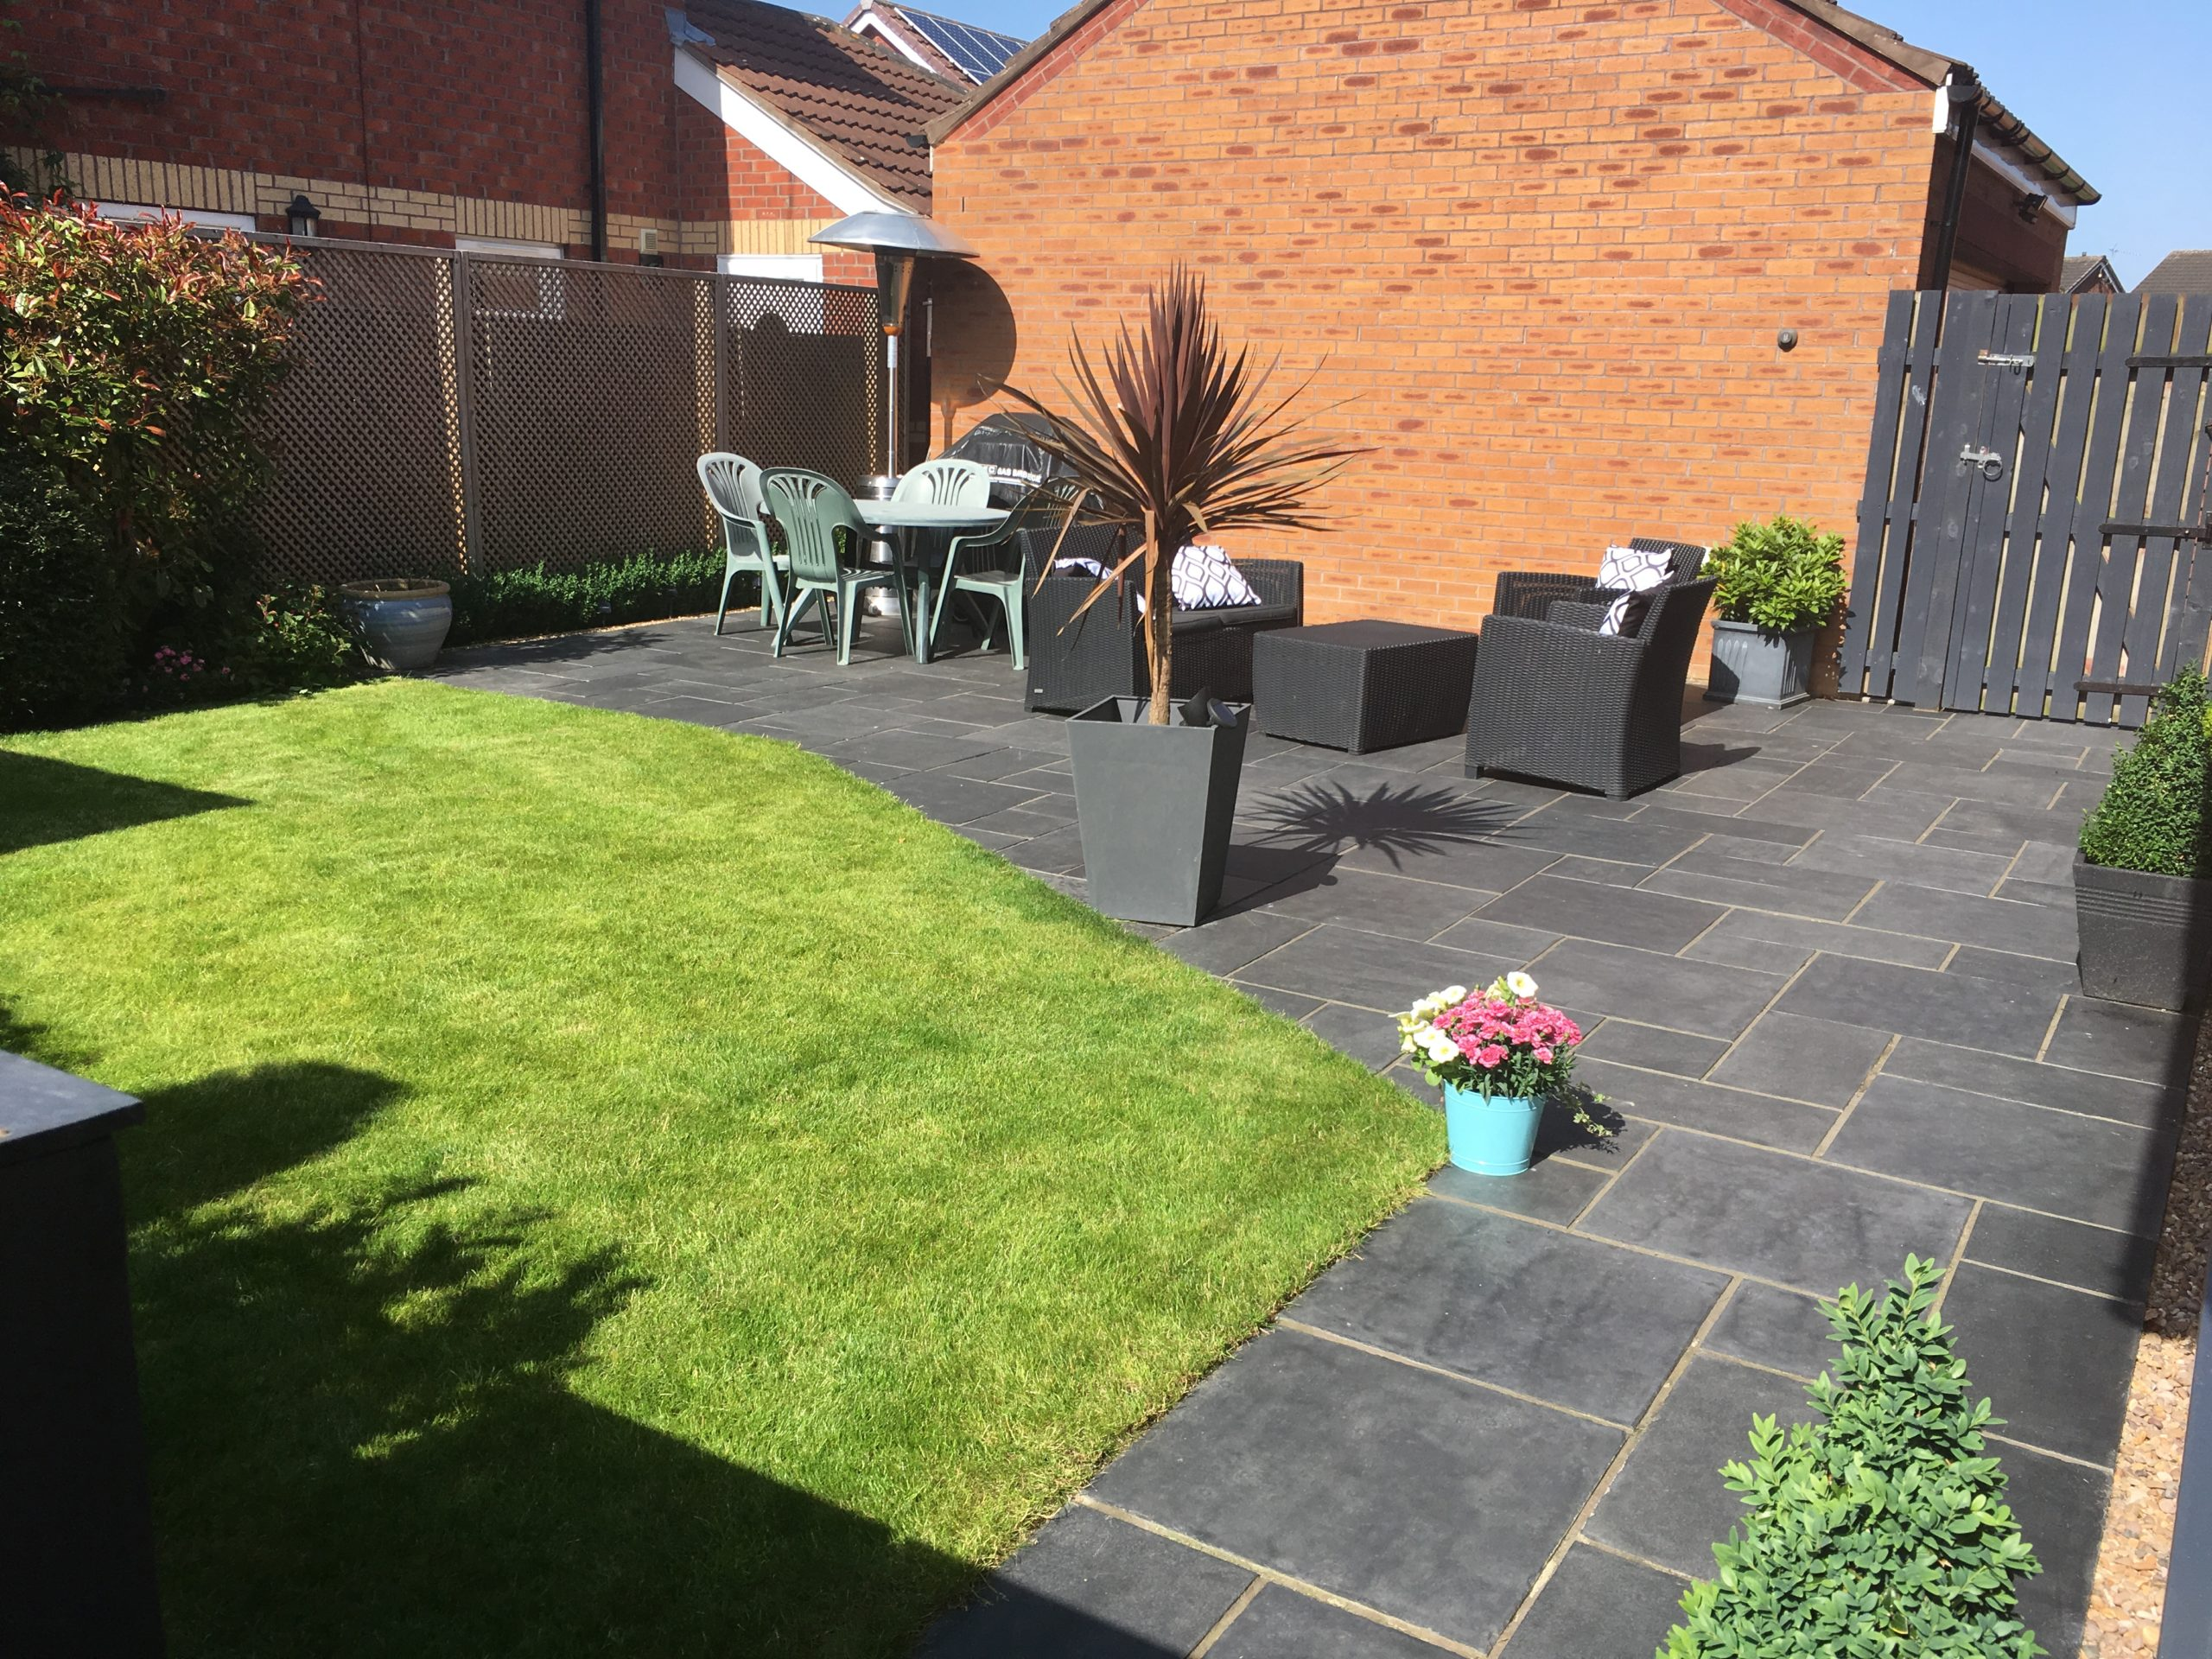 Lawn furniture and garden in front of a single storey extension